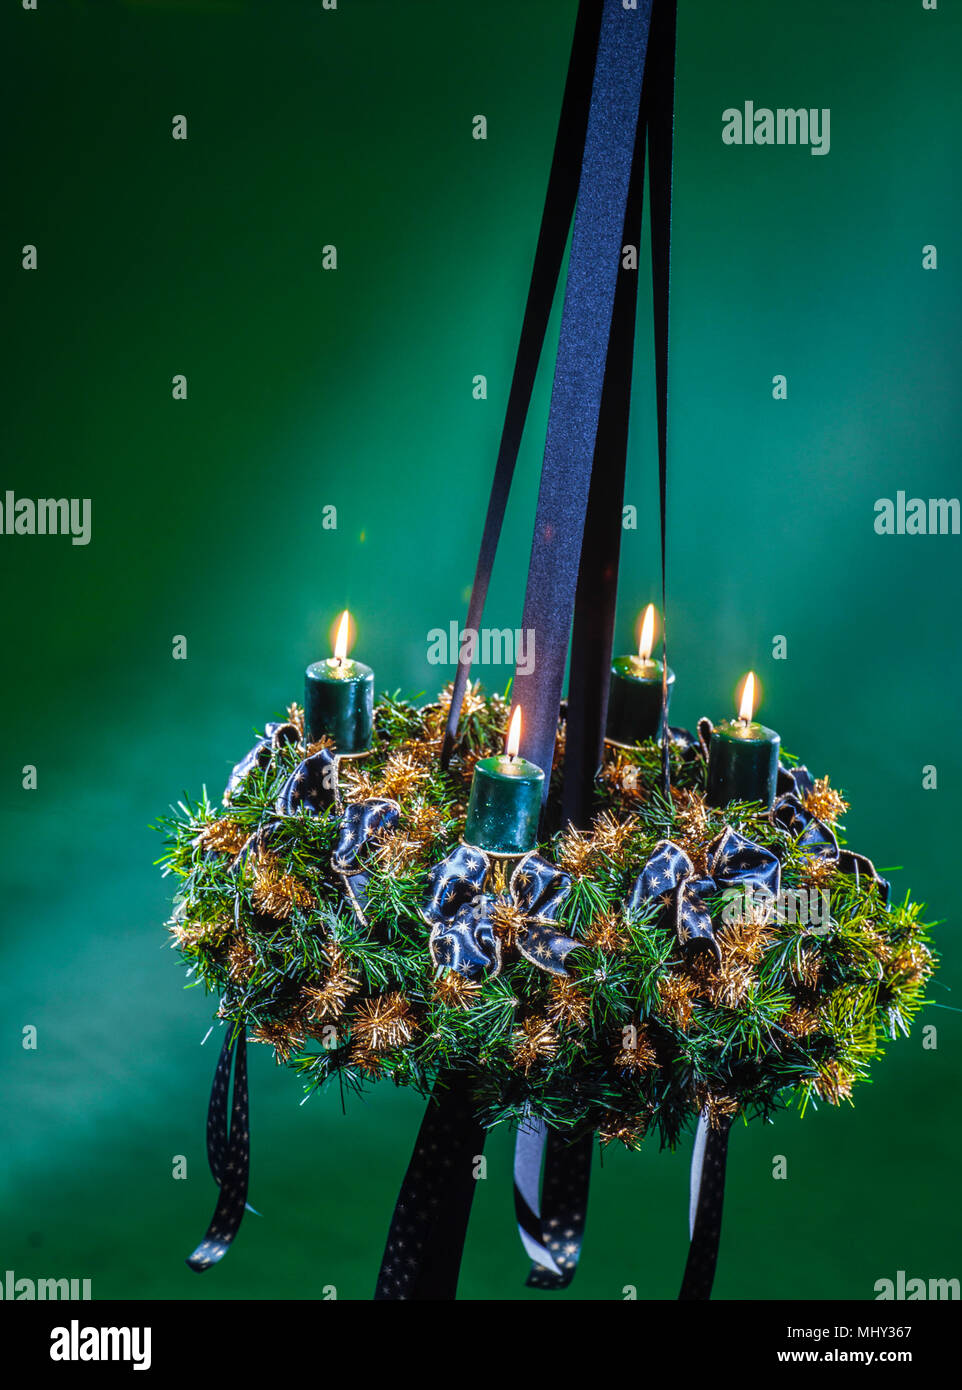 advent wreath with shiny candles, full of atmosphere Stock Photo